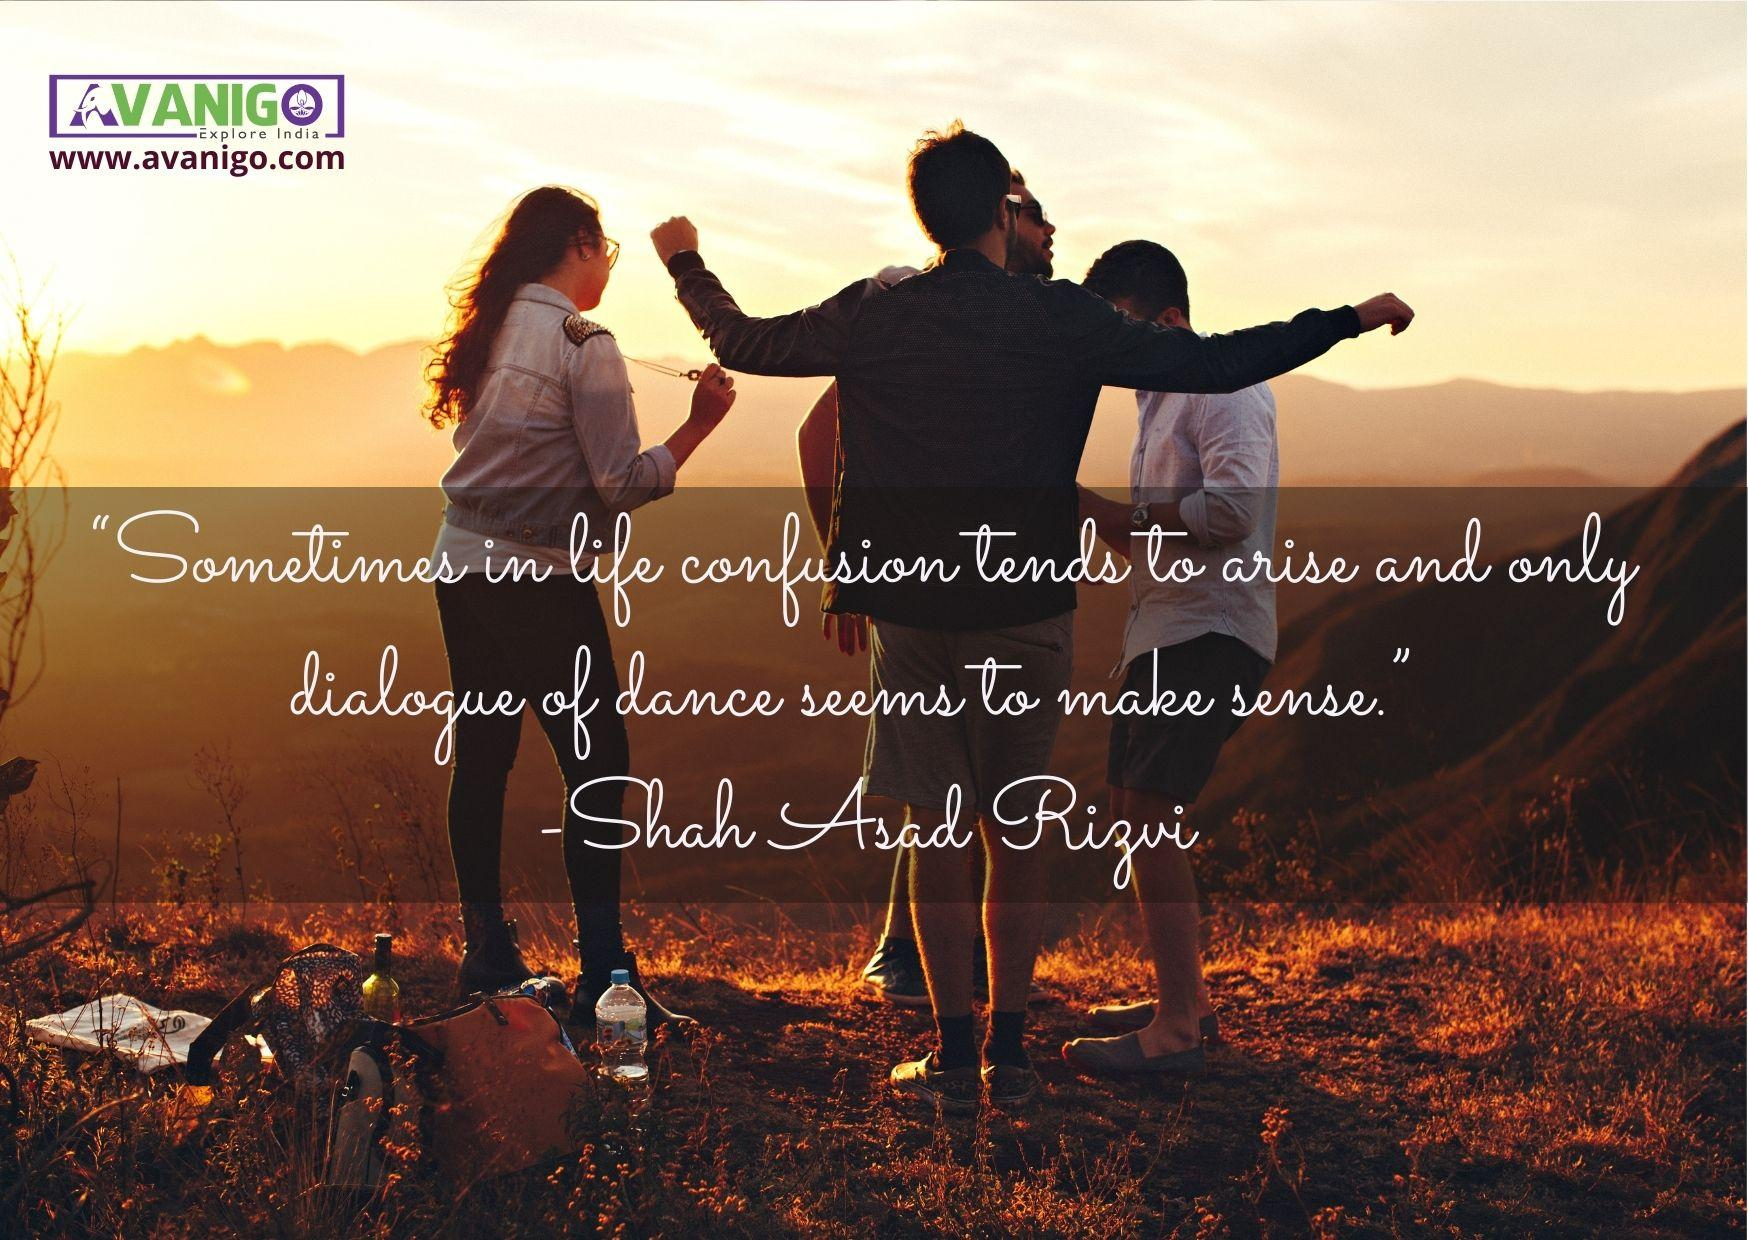 Sometimes in life confusion tends to arise and only dialogue of dance seems to make sense.